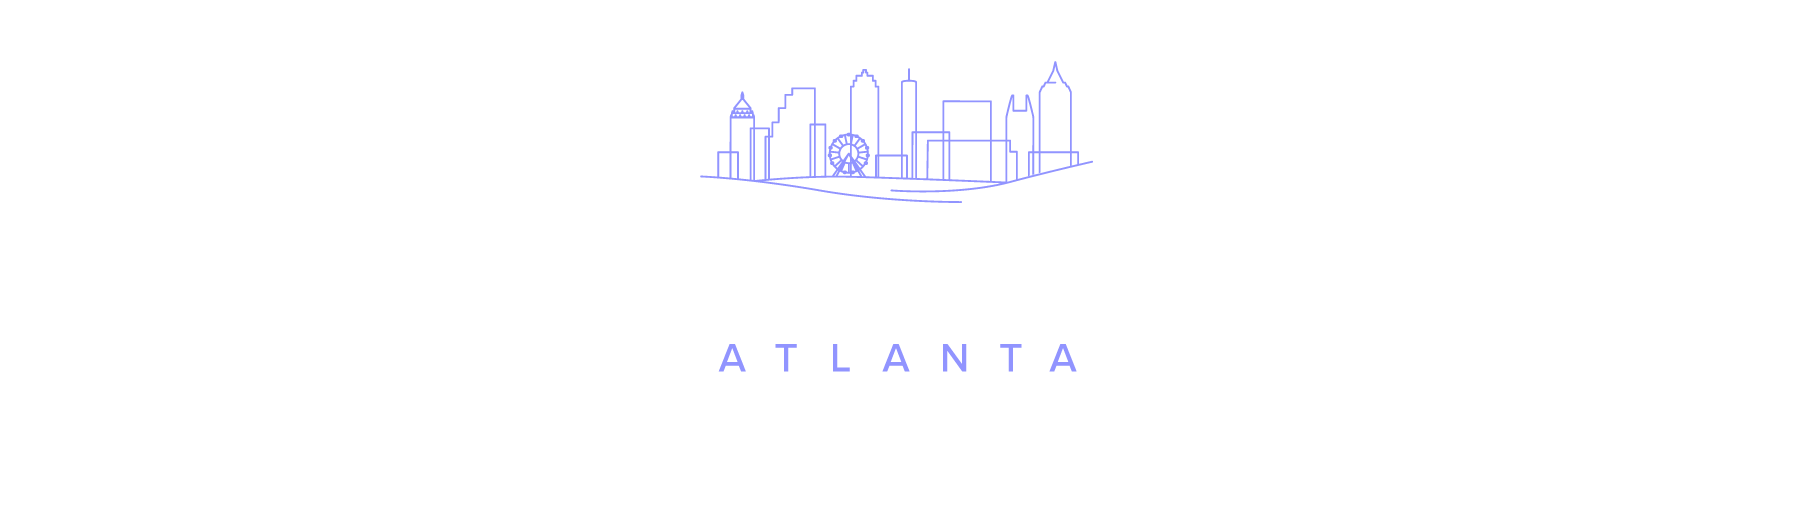 Shopify Meetup Atlanta Presented by: Nicely Built